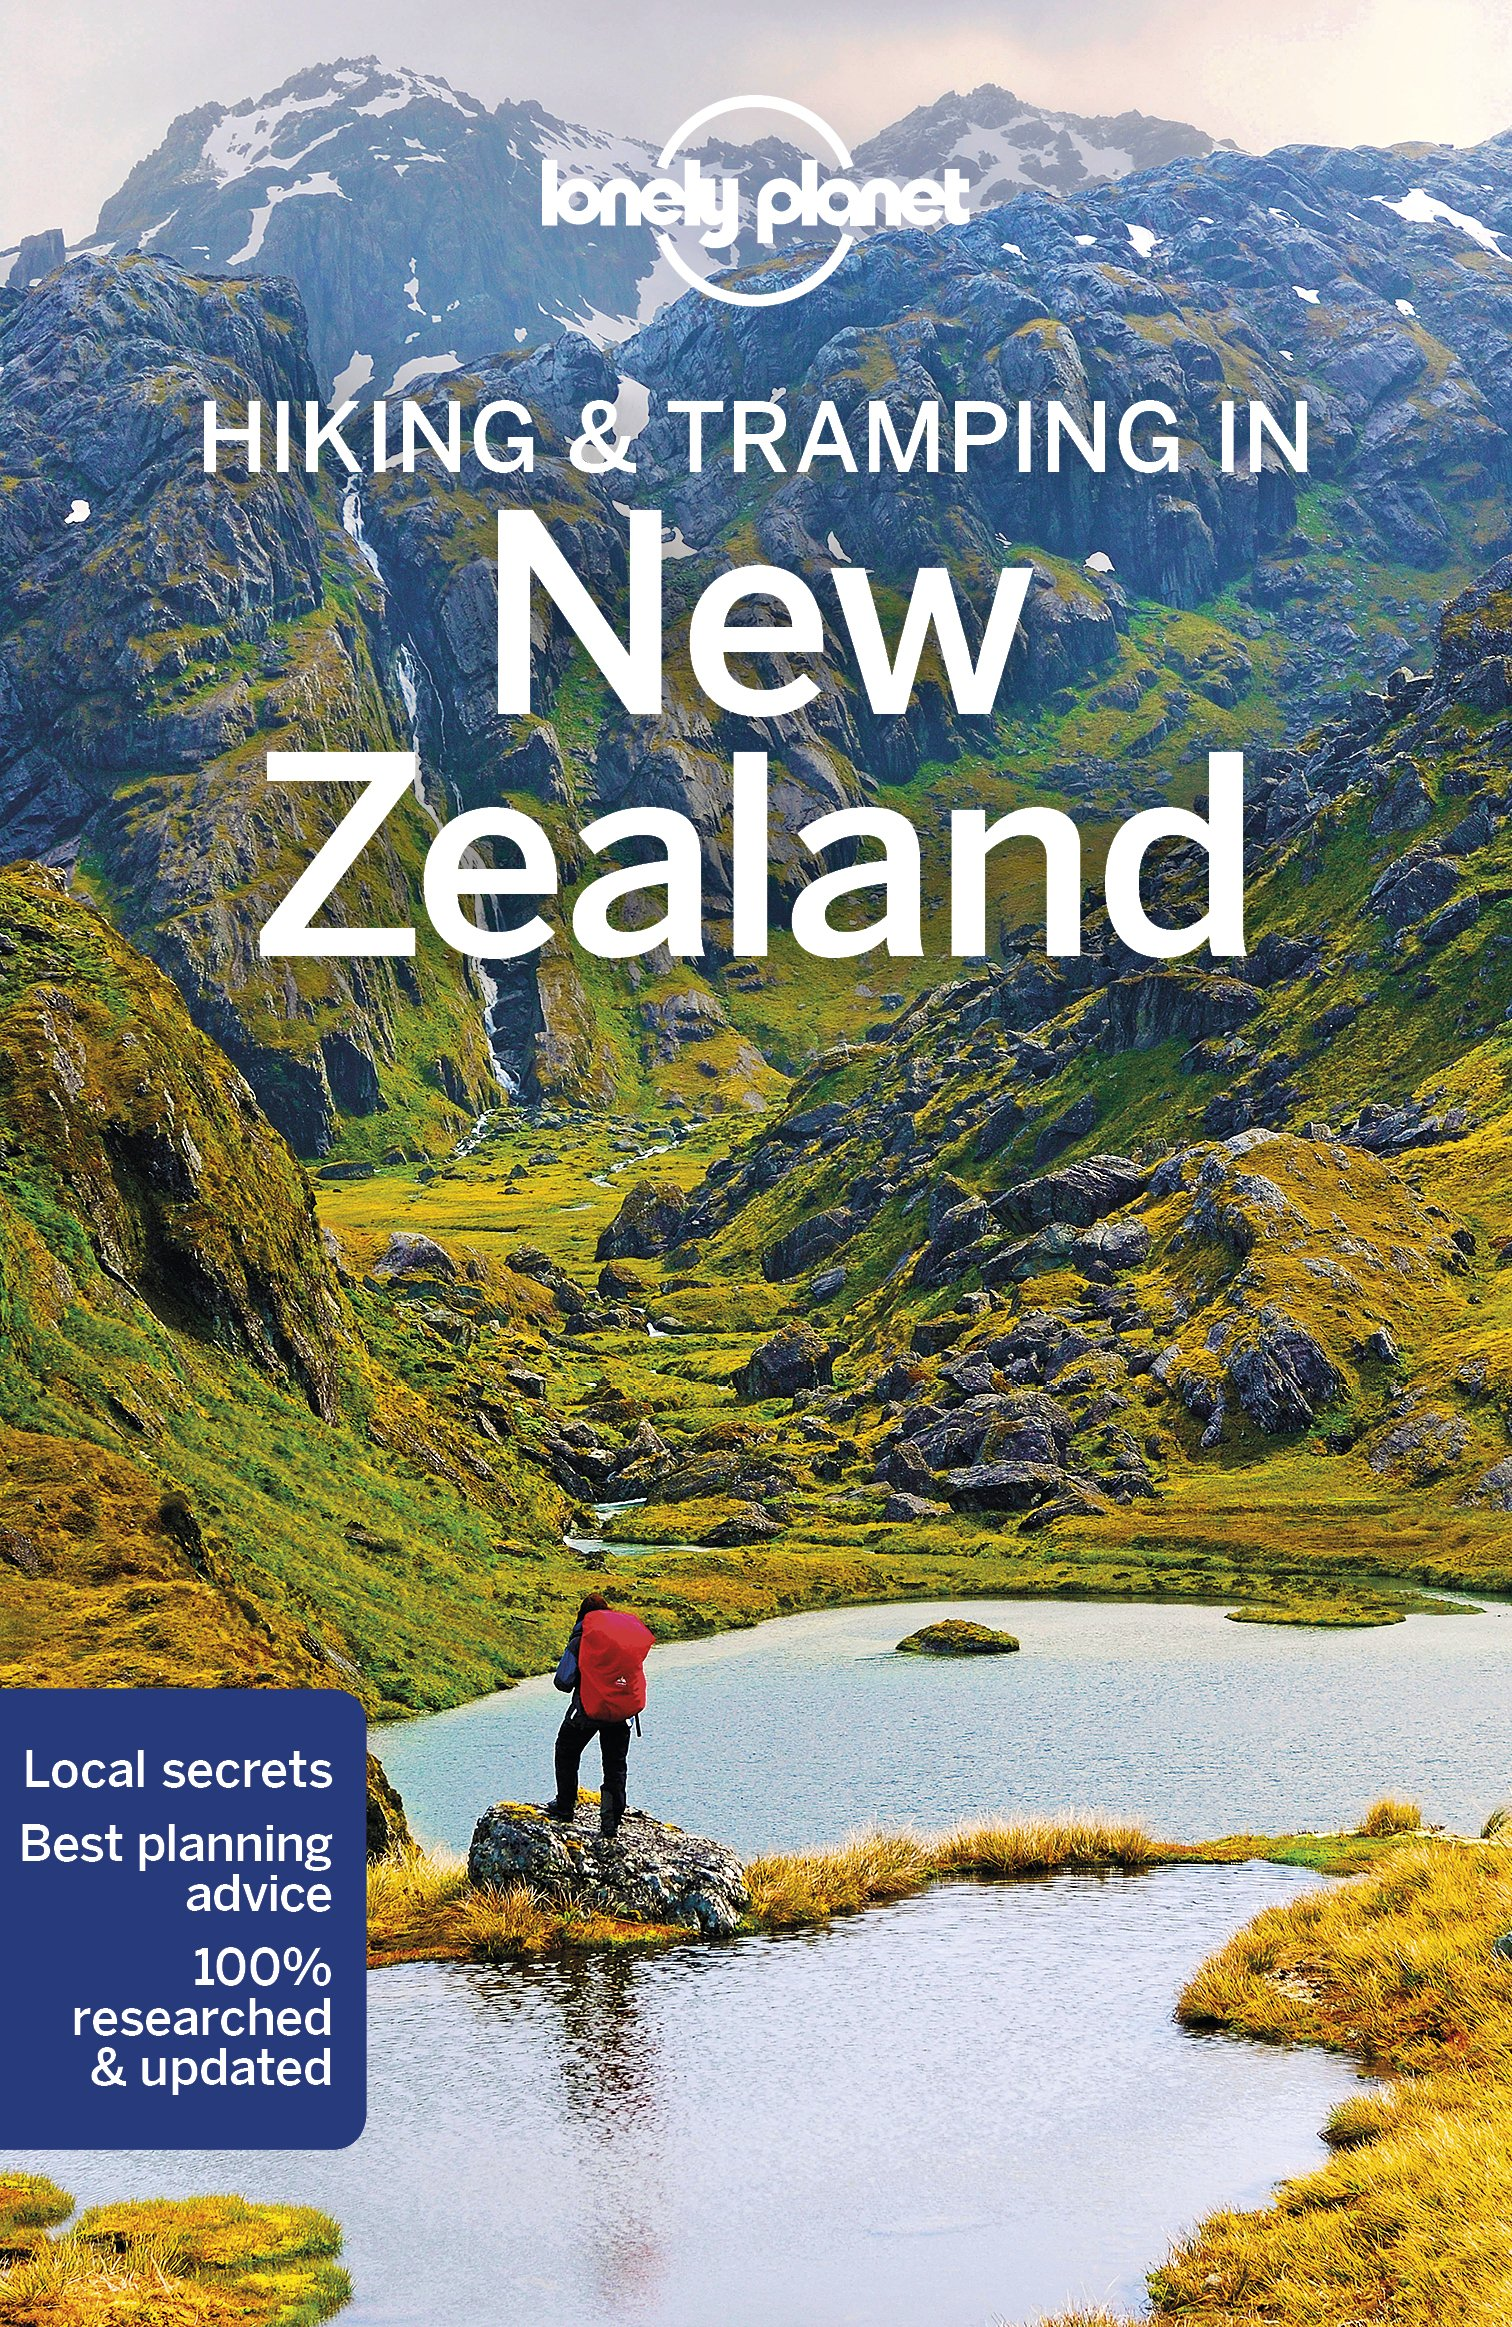 Lonely Planet Hiking & Tramping in New Zealand (Travel Guide) Paperback – December 18, 2018 Andrew Bain Jim DuFresne 1786572699 General Adult